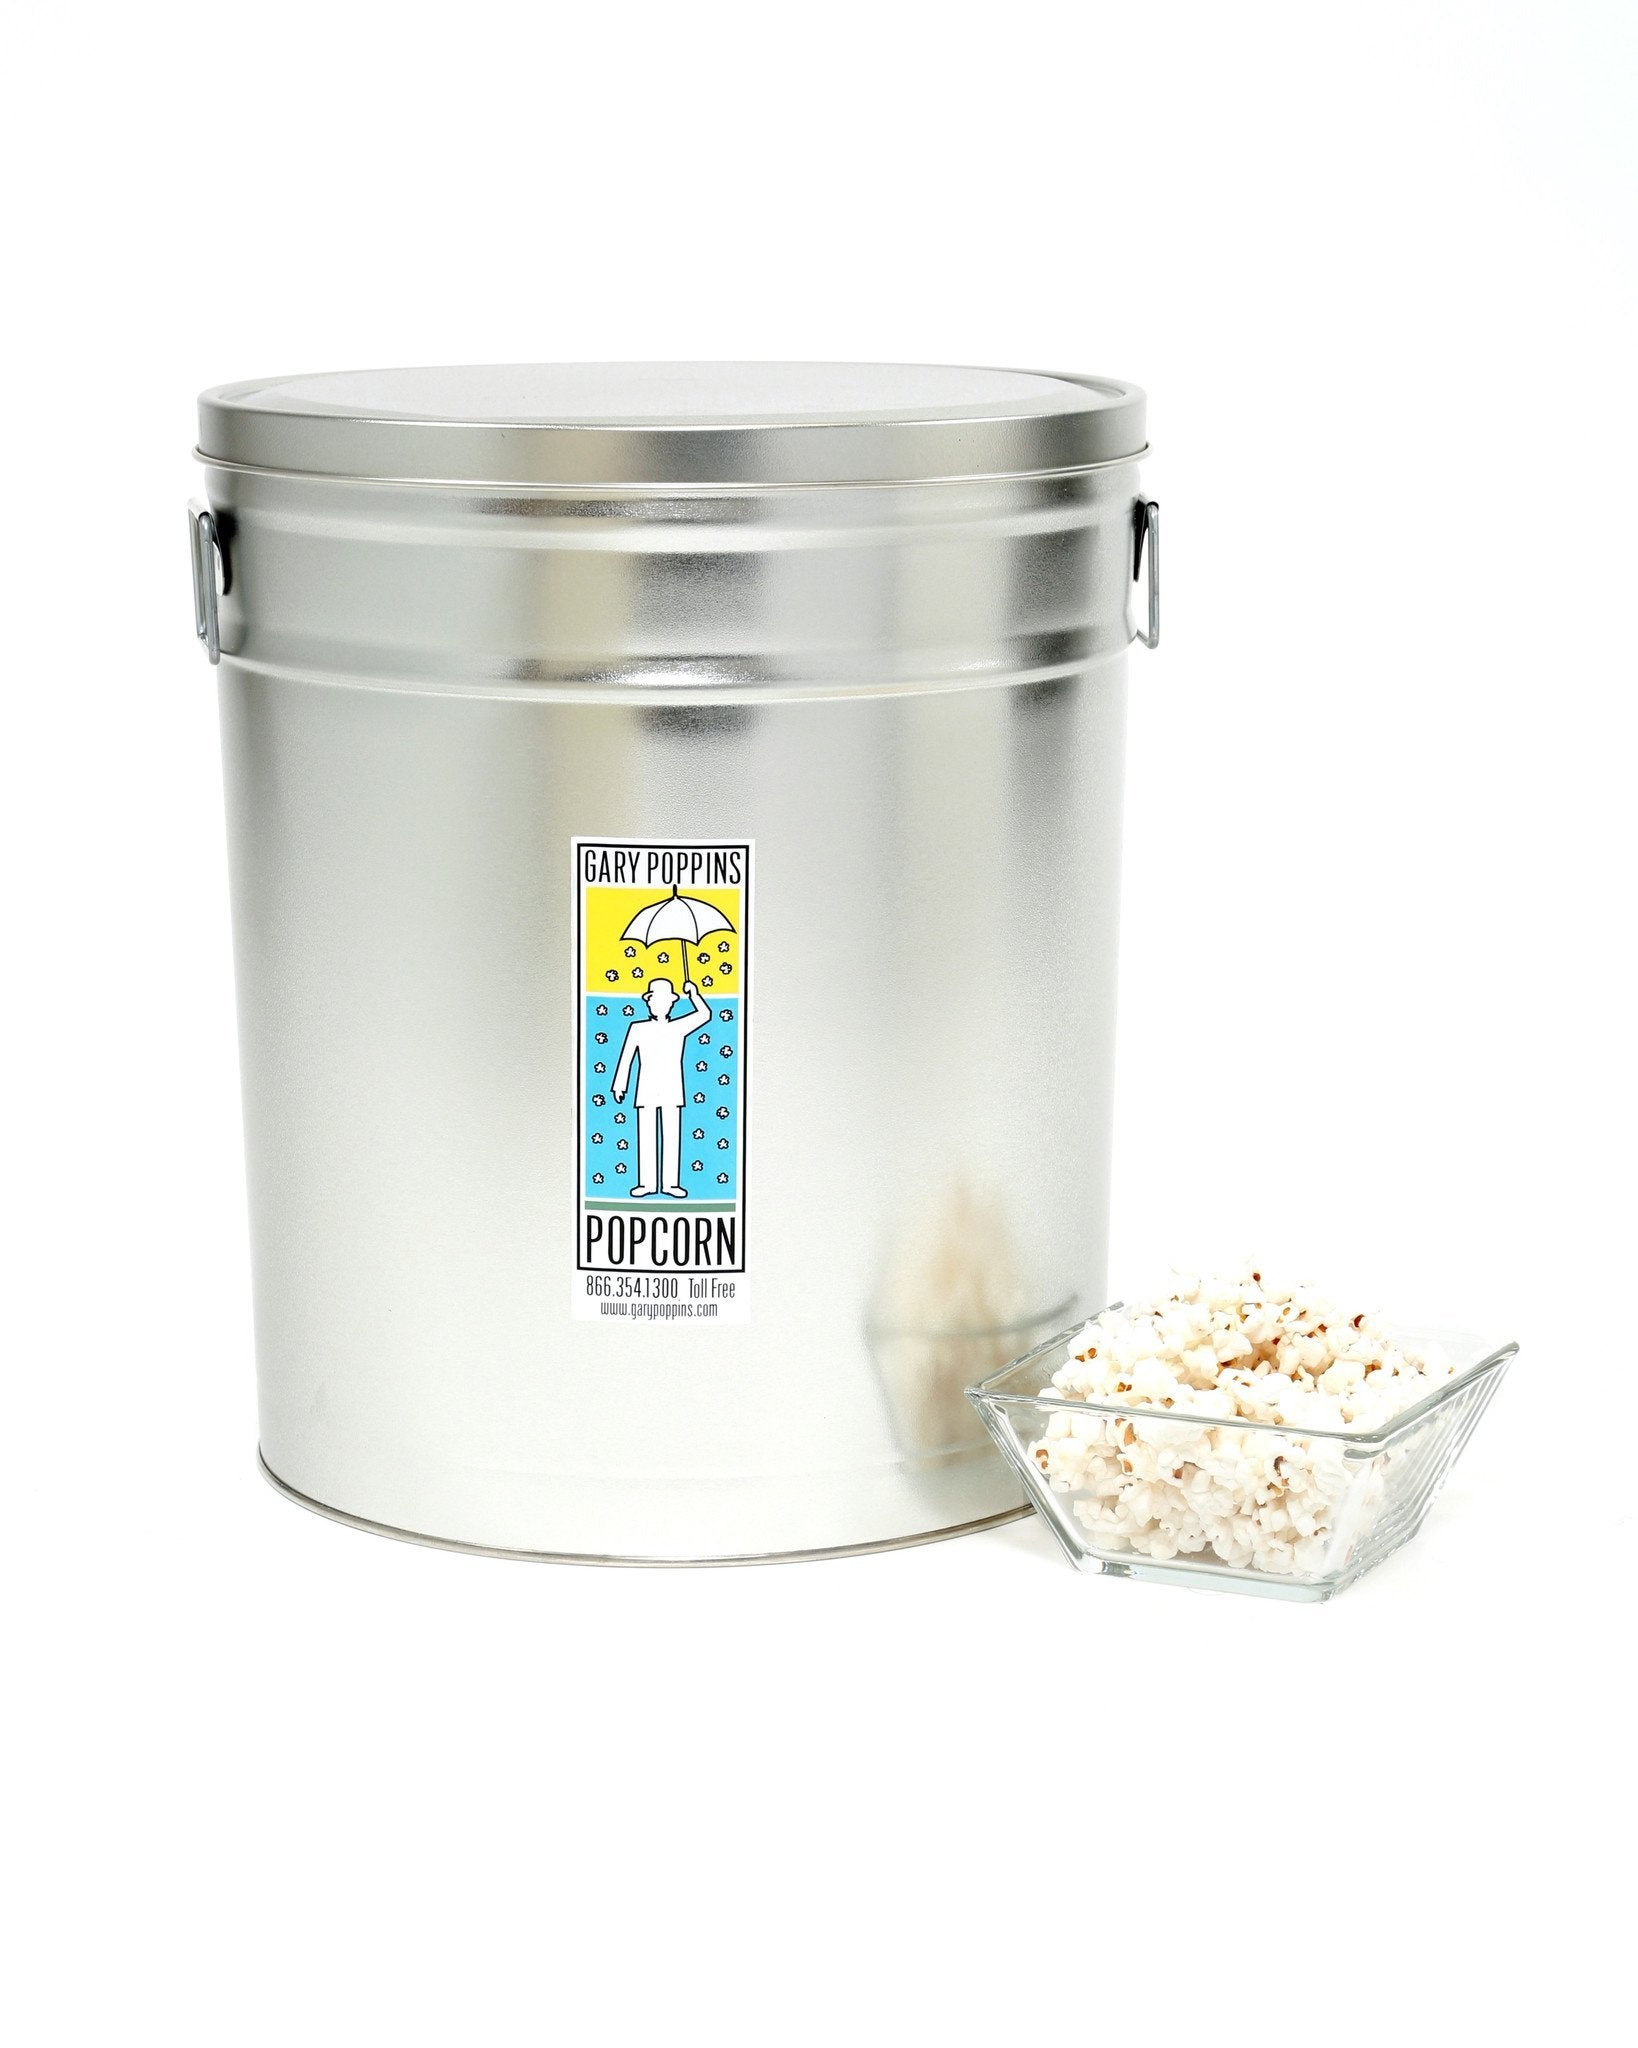 LITE Extra Virgin Olive Oil with Pink Himalayan Salt - Gourmet Popcorn - 6.5 Gallon Tin